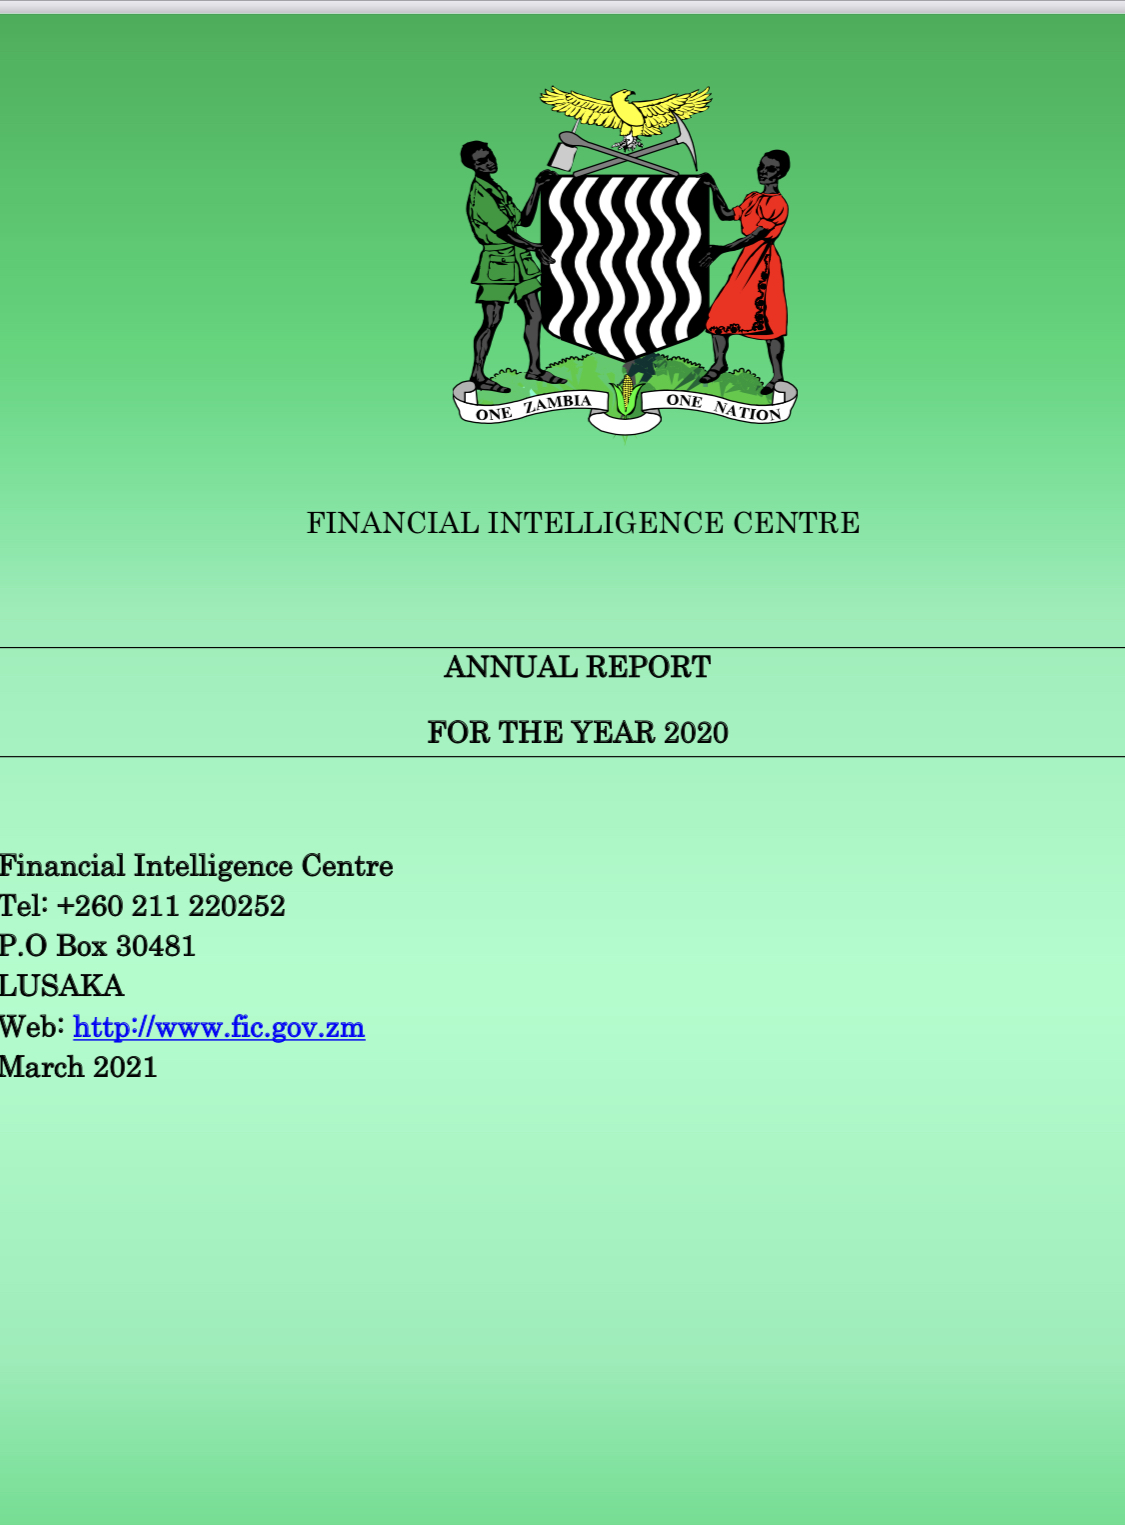 FIC says money laundering increased to K3b in 2020